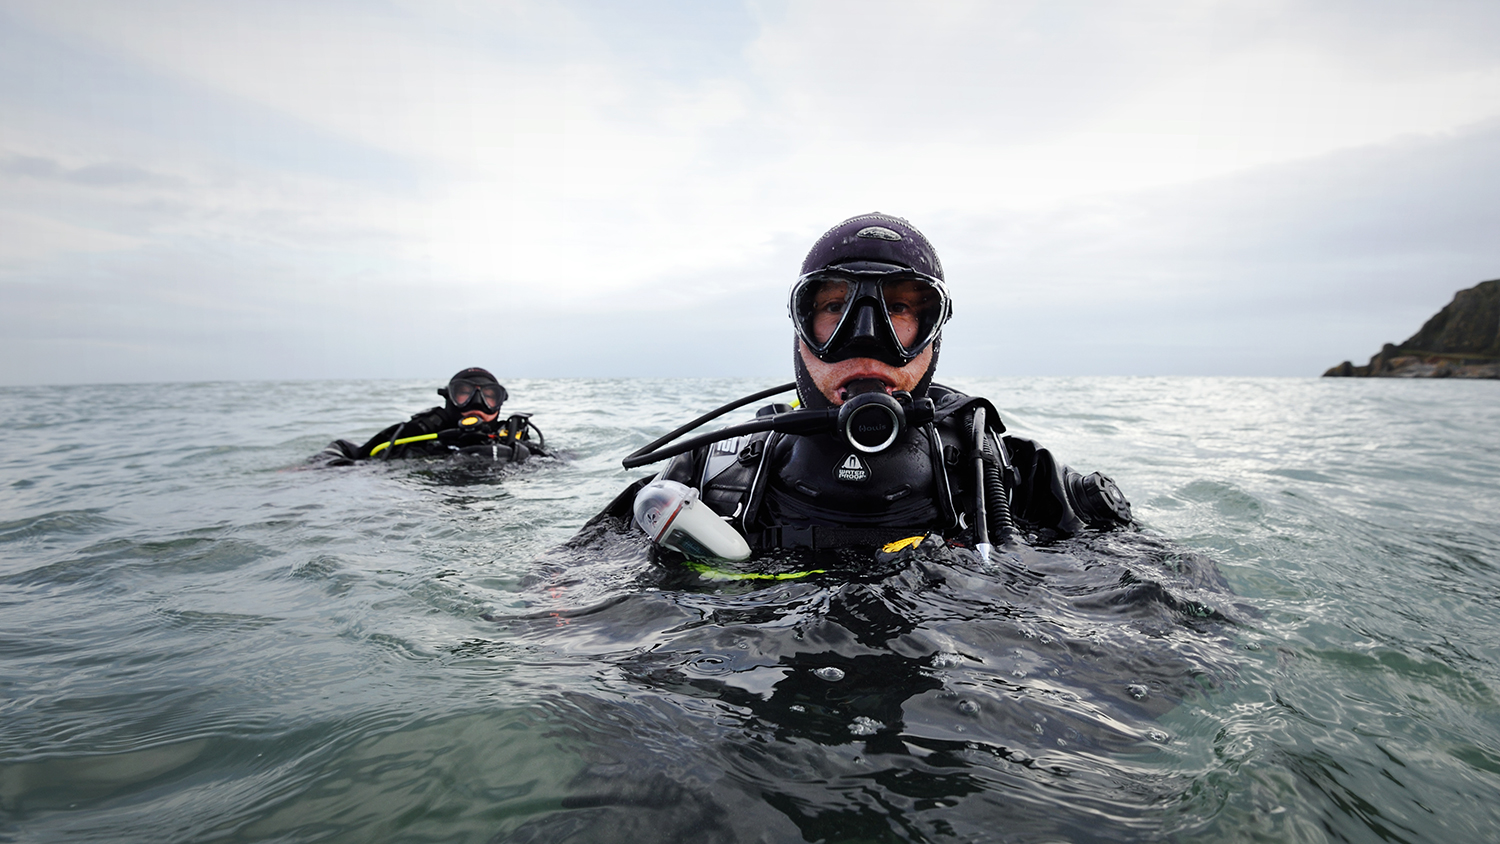 Divers in the sea during a search and rescue exercise with RNLI Torbay.